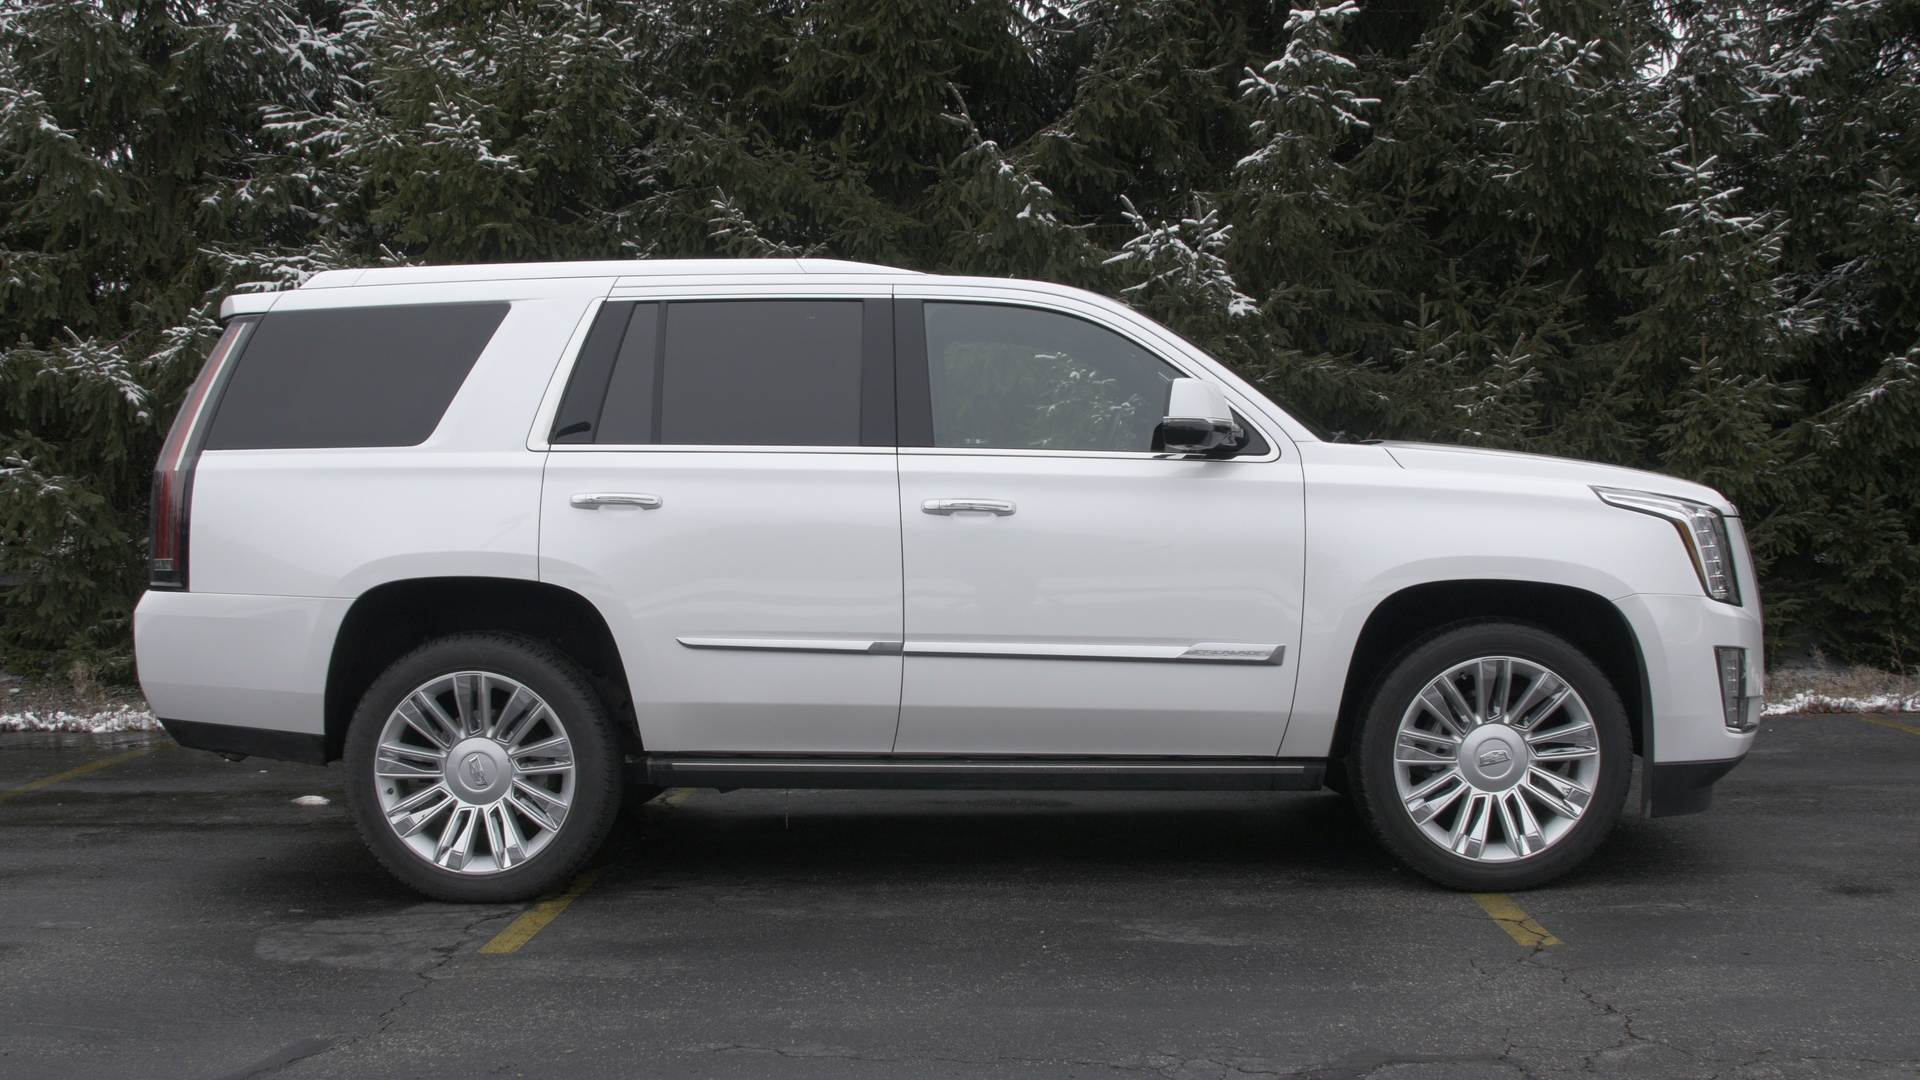 2016 cadillac escalade 4wd platinum why buy. Cars Review. Best American Auto & Cars Review